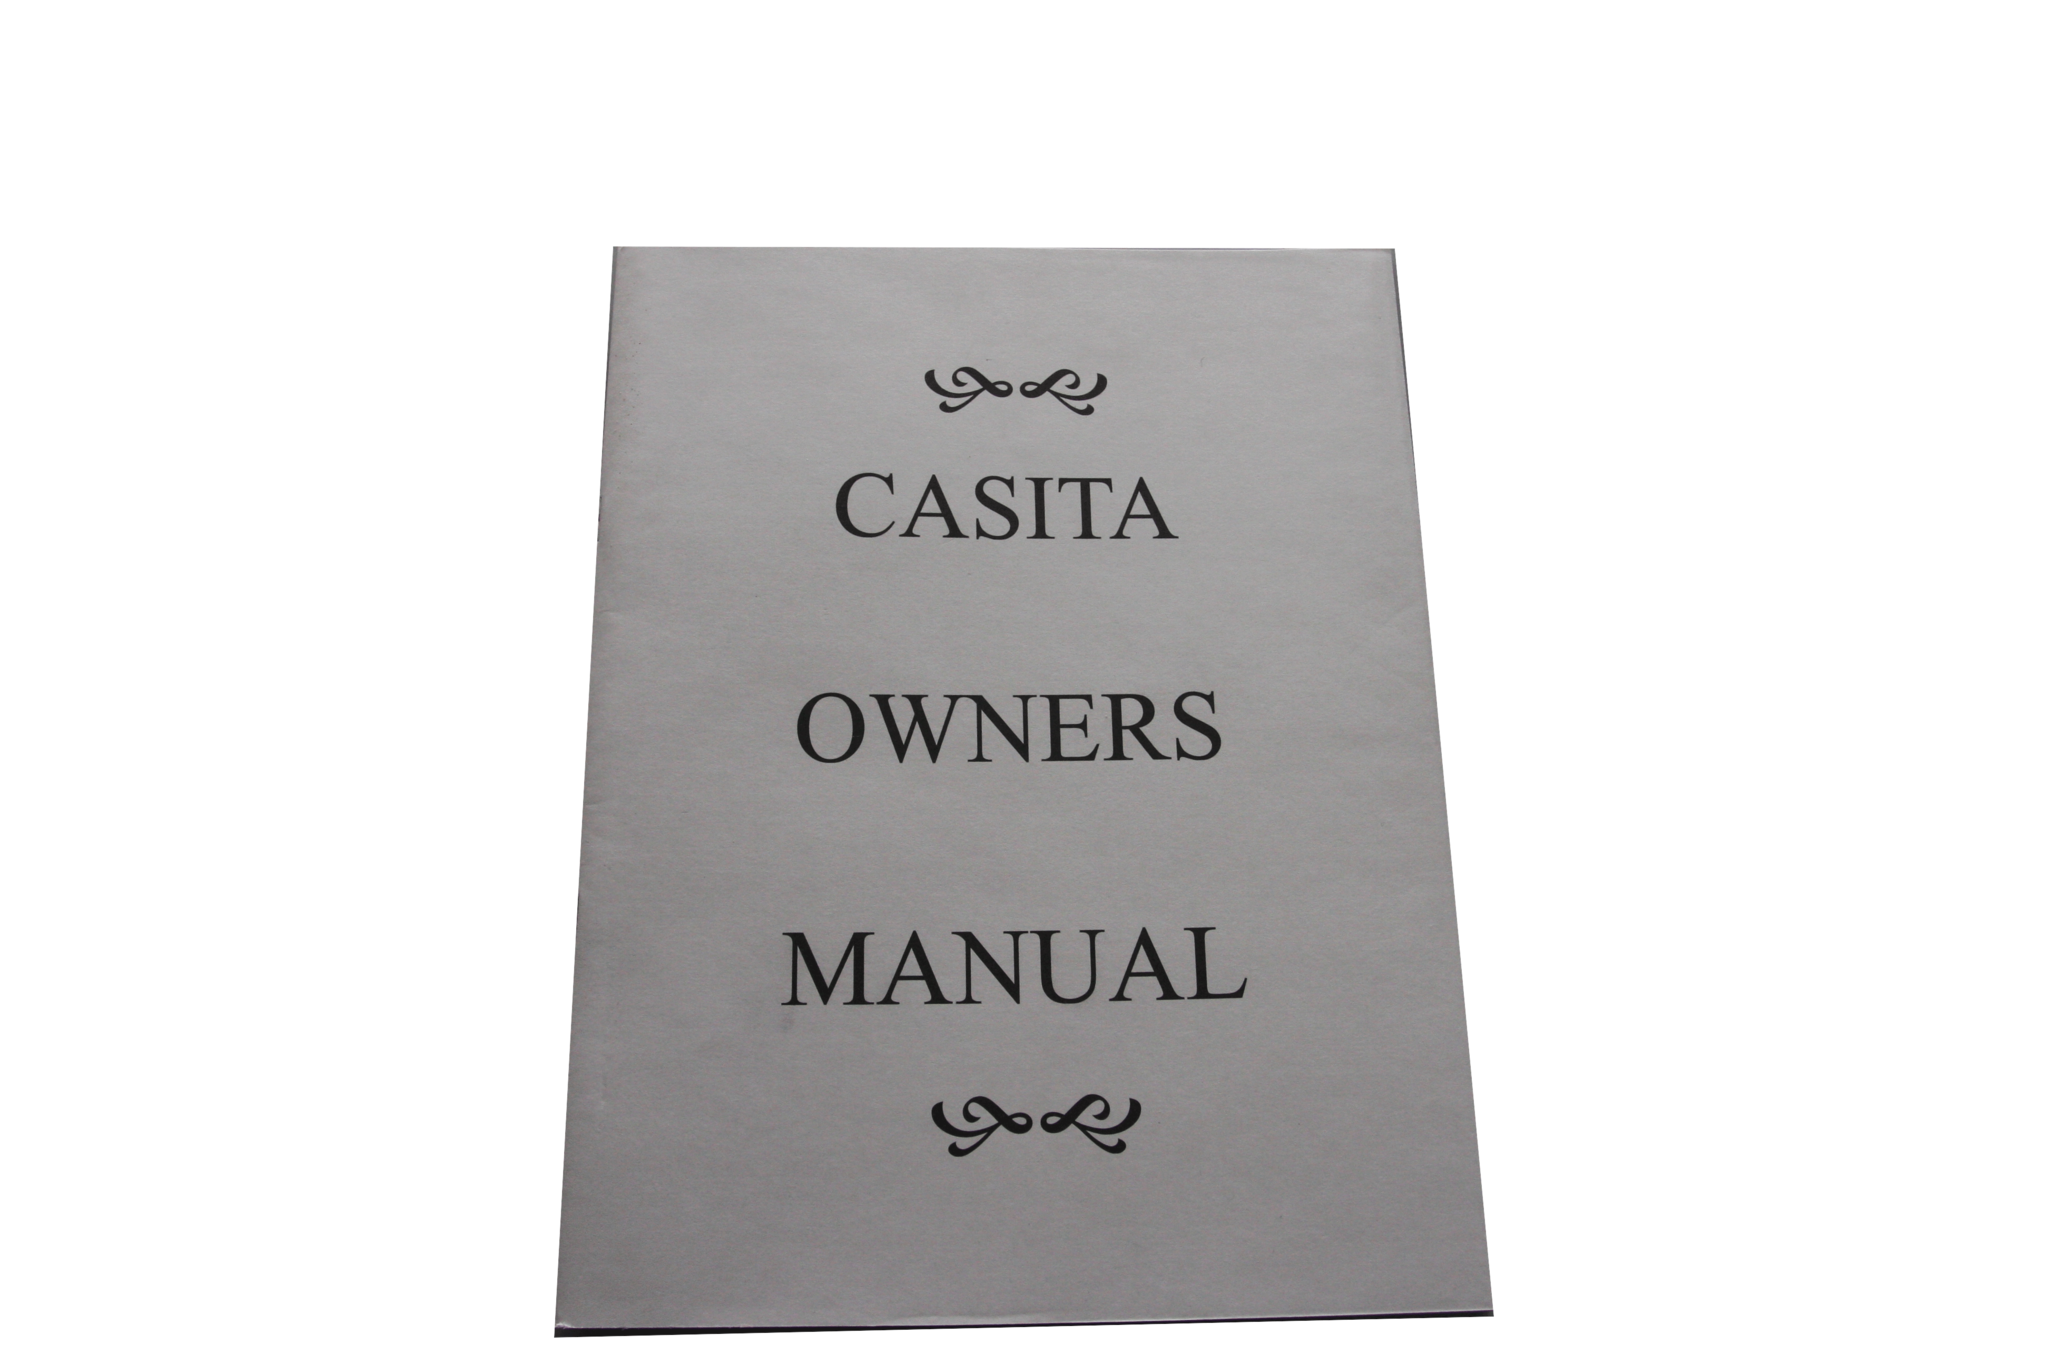 Casita Owners Manual